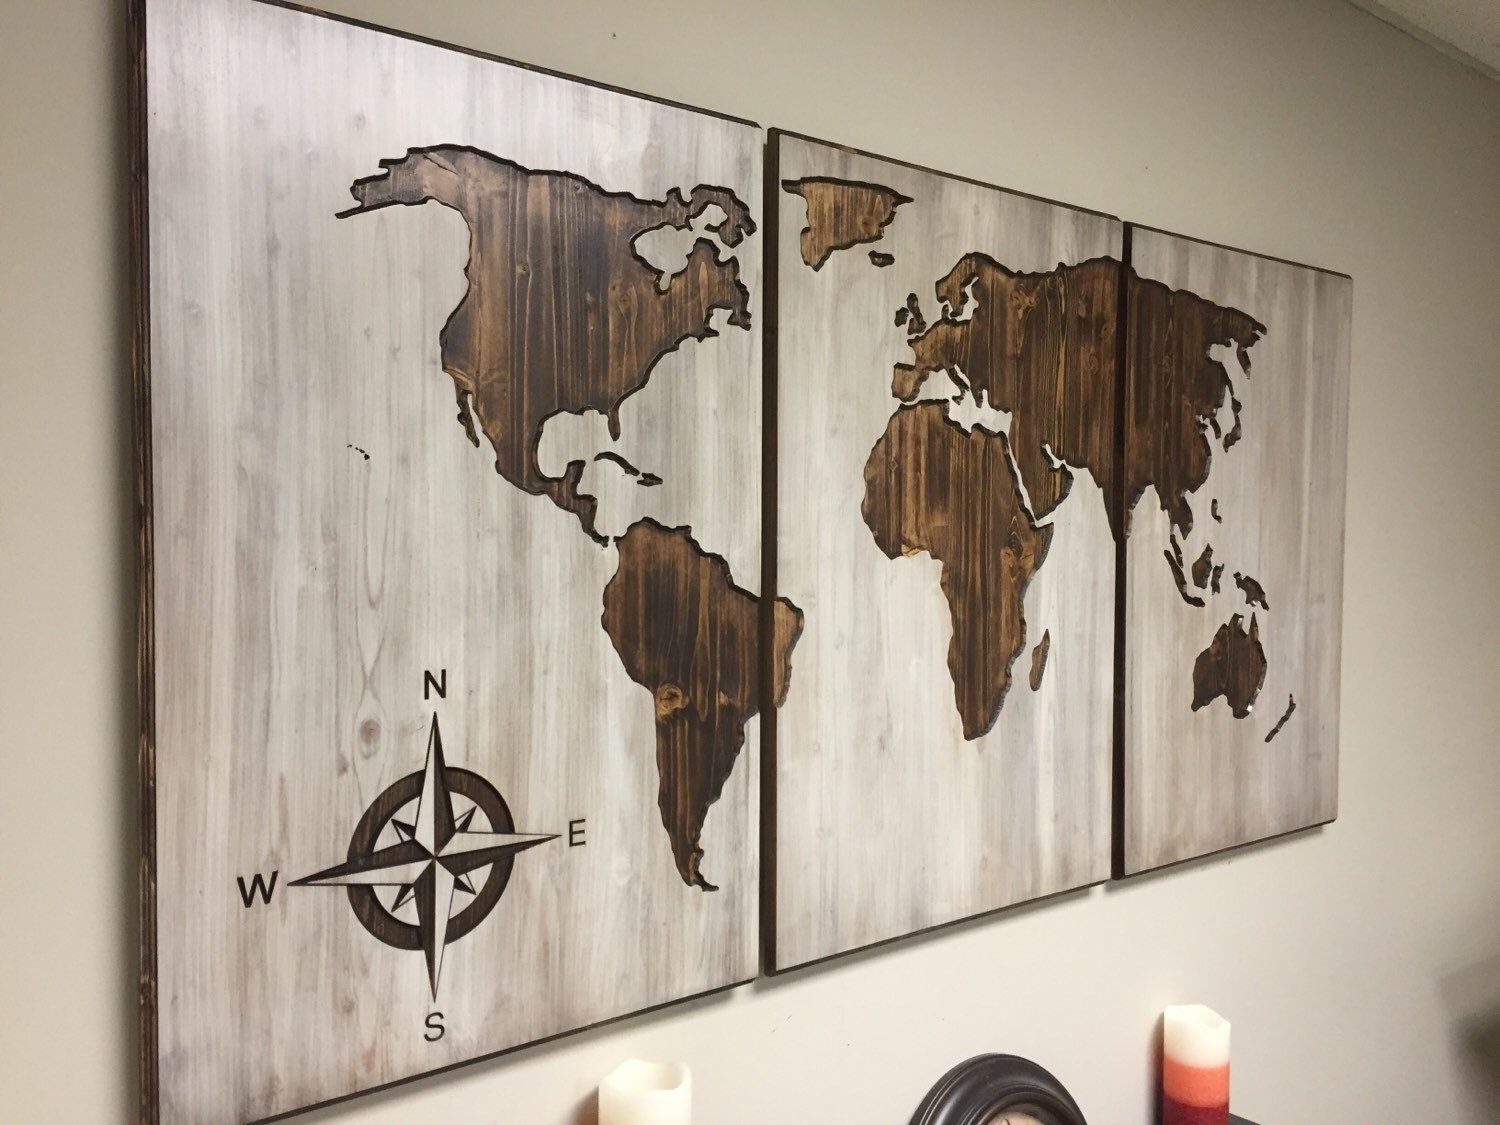 For Wall Art World Map - World Maps Collection within Most Current Map Of The World Wall Art